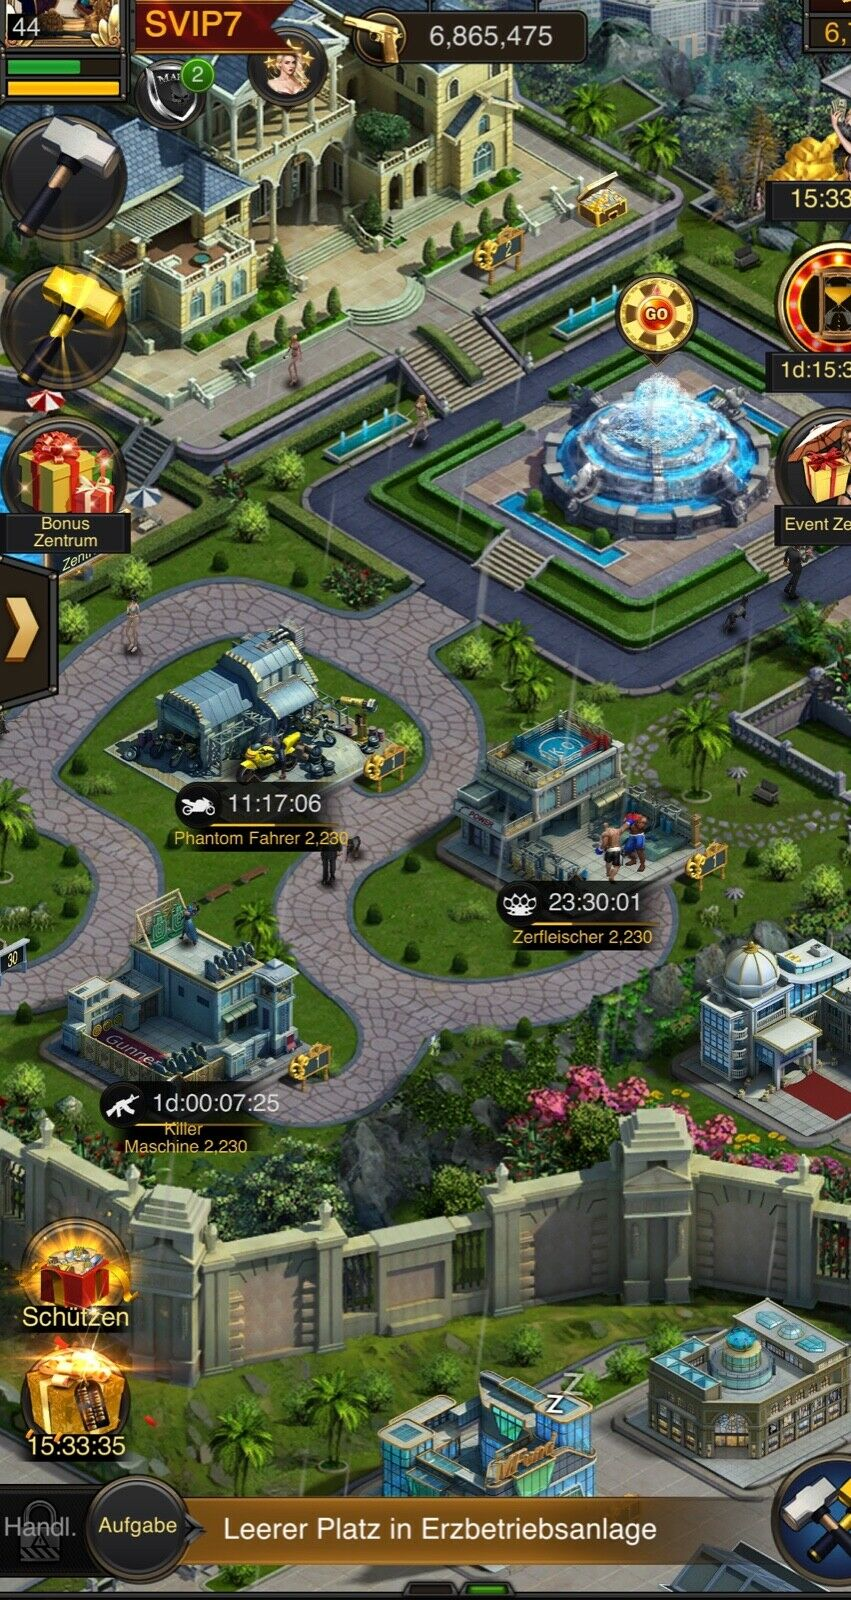 Sold Mafia City Account Elite 2 And 28 Playerup Accounts Marketplace Player 2 Player Secure Platform